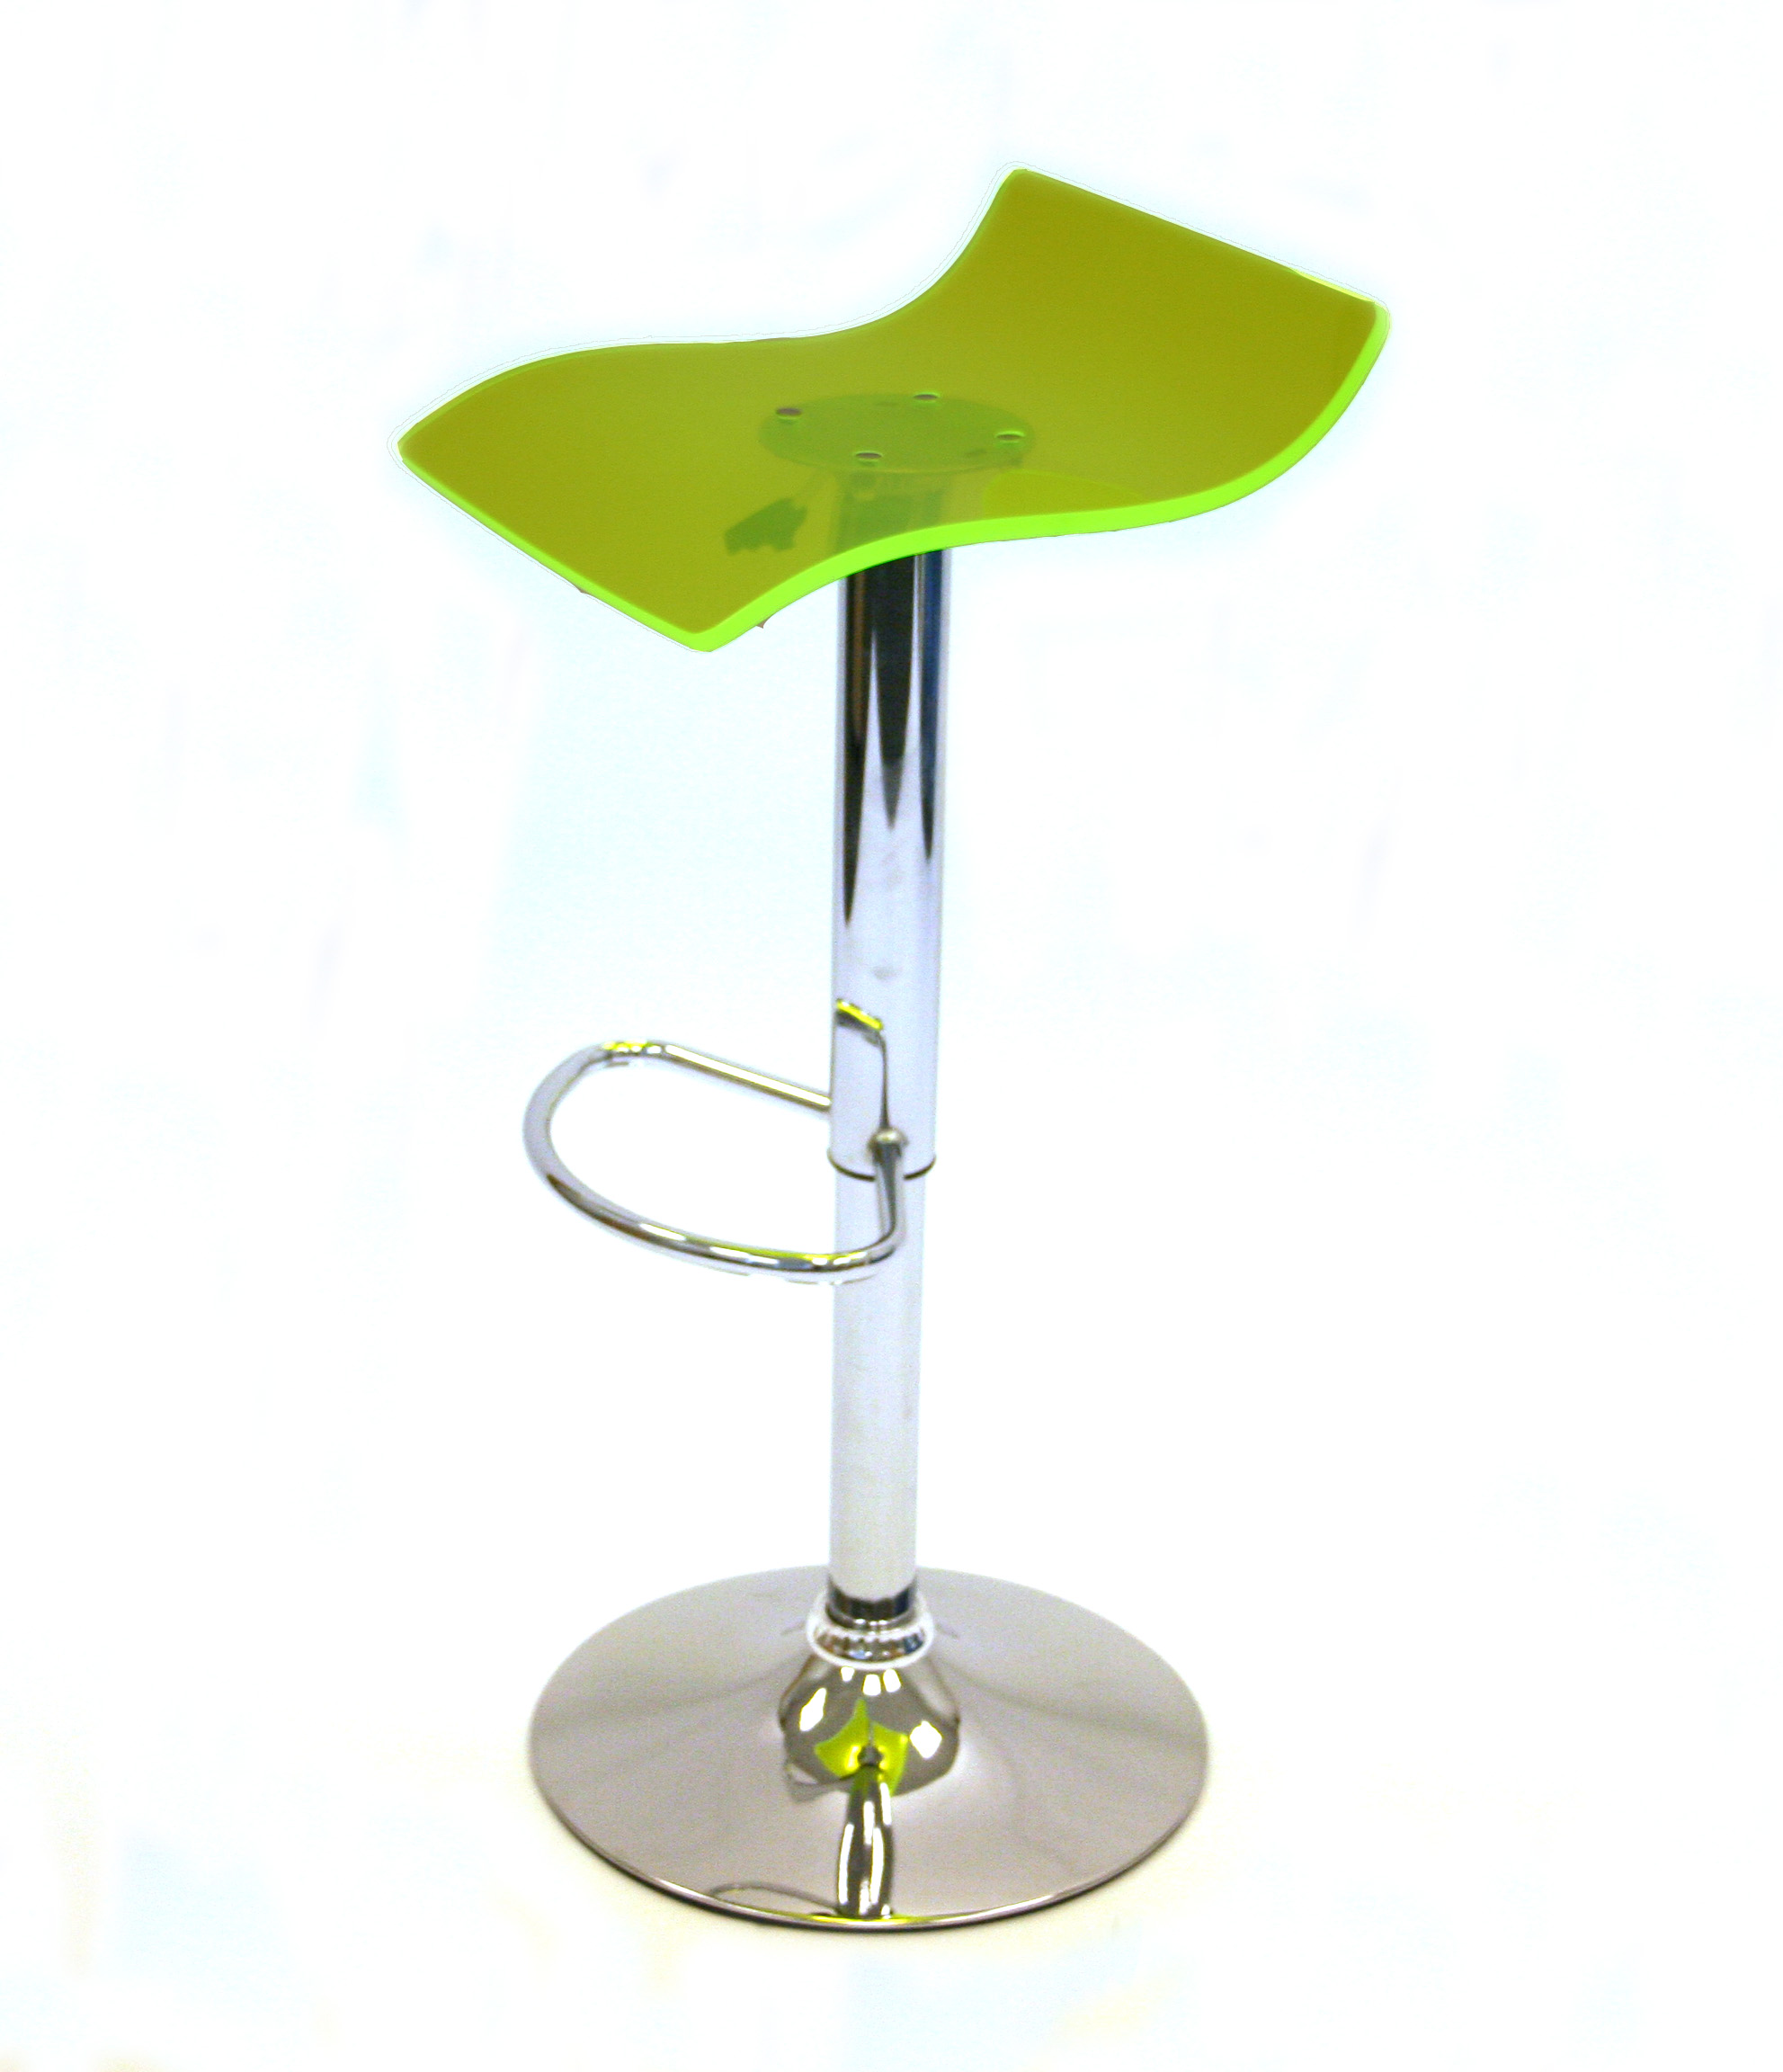 Ex Hire Green Bar Stools - Bistros, Cafes, Events - BE Furniture Sales